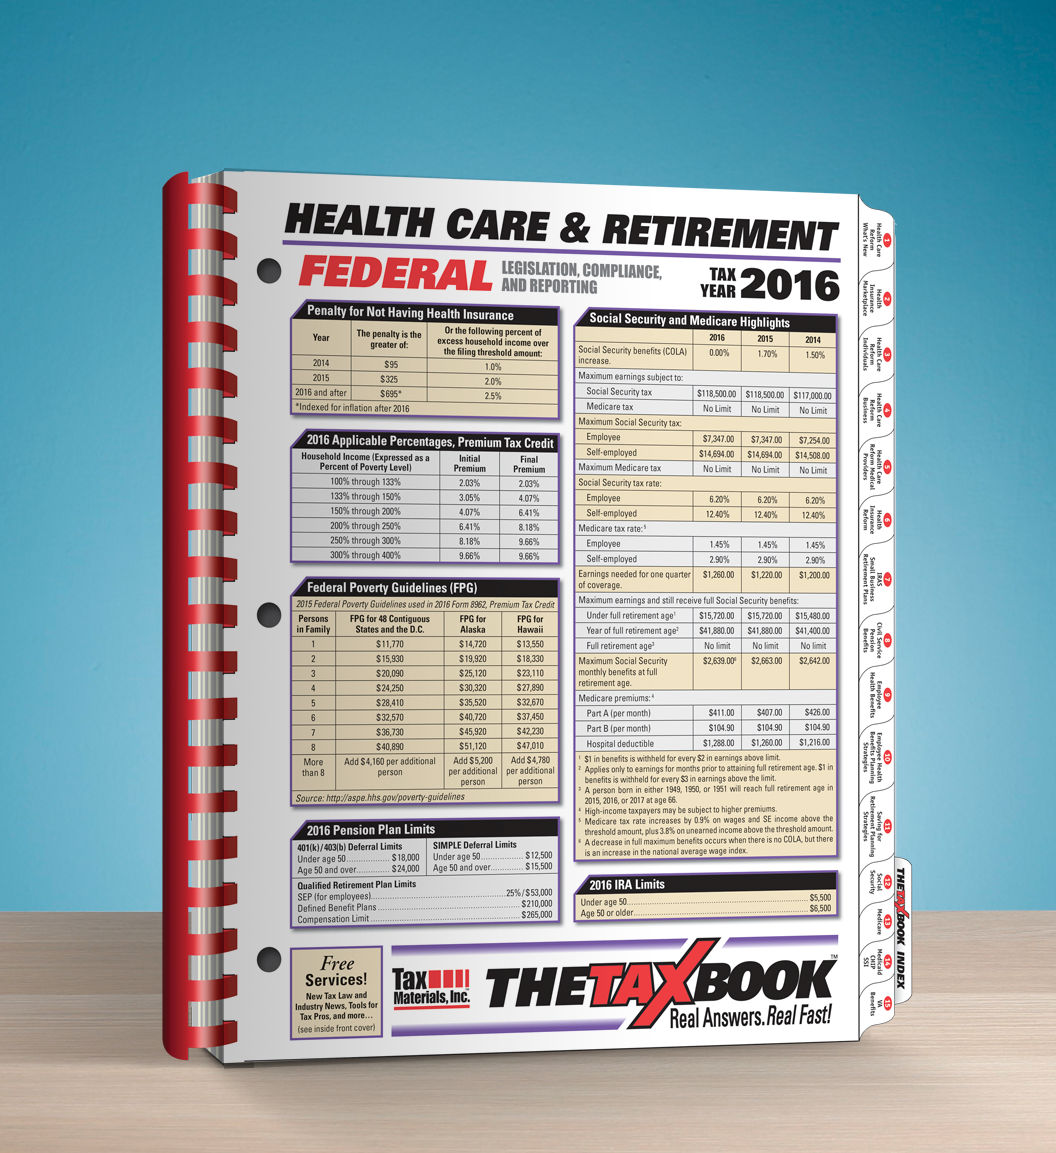 TheTaxBook Health Care & Retirement (2016) - #4613